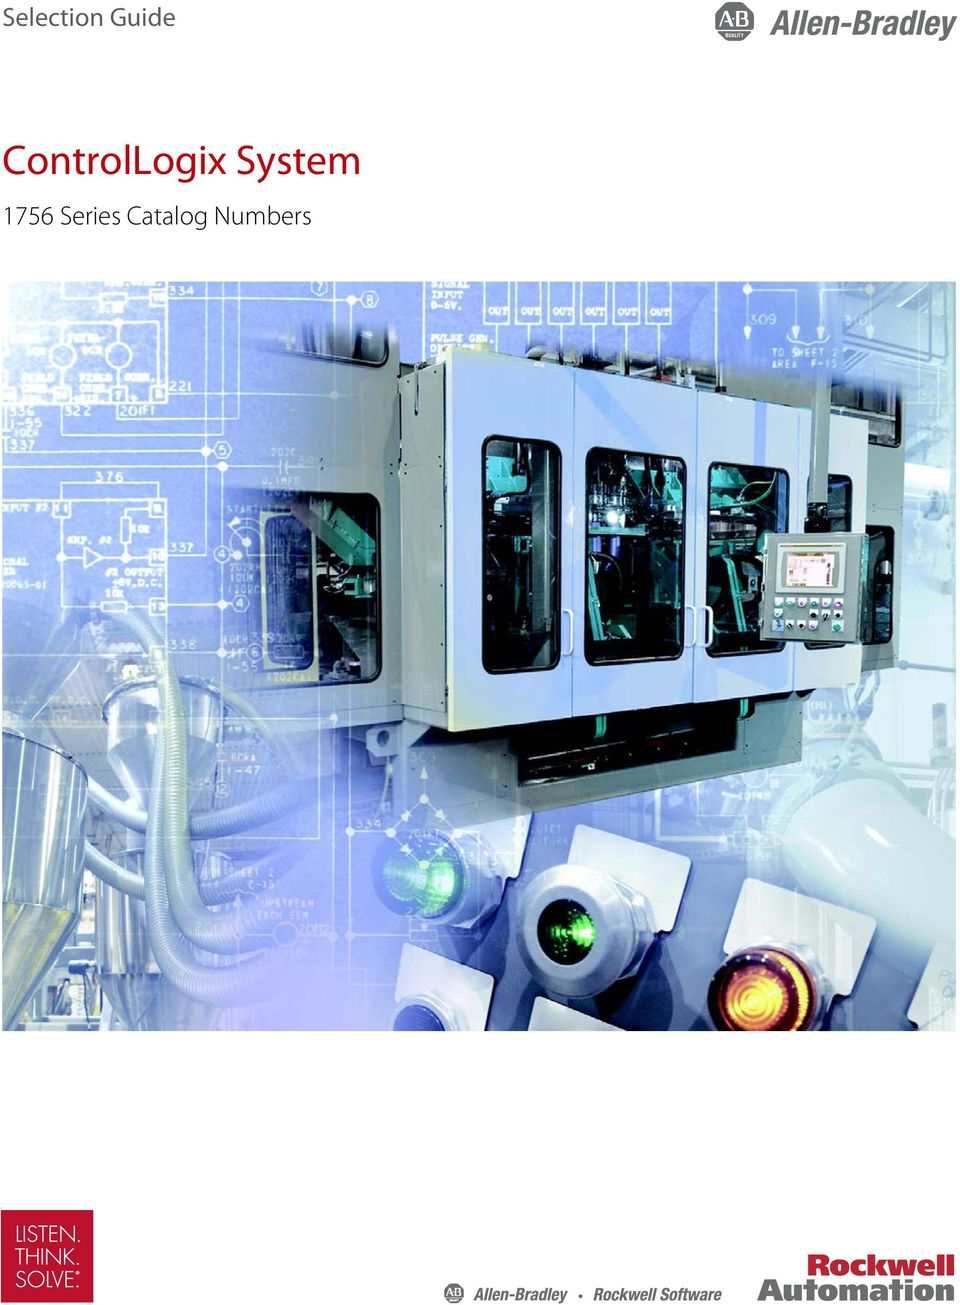 Selection Guide. ControlLogix System Series Catalog Numbers - PDF